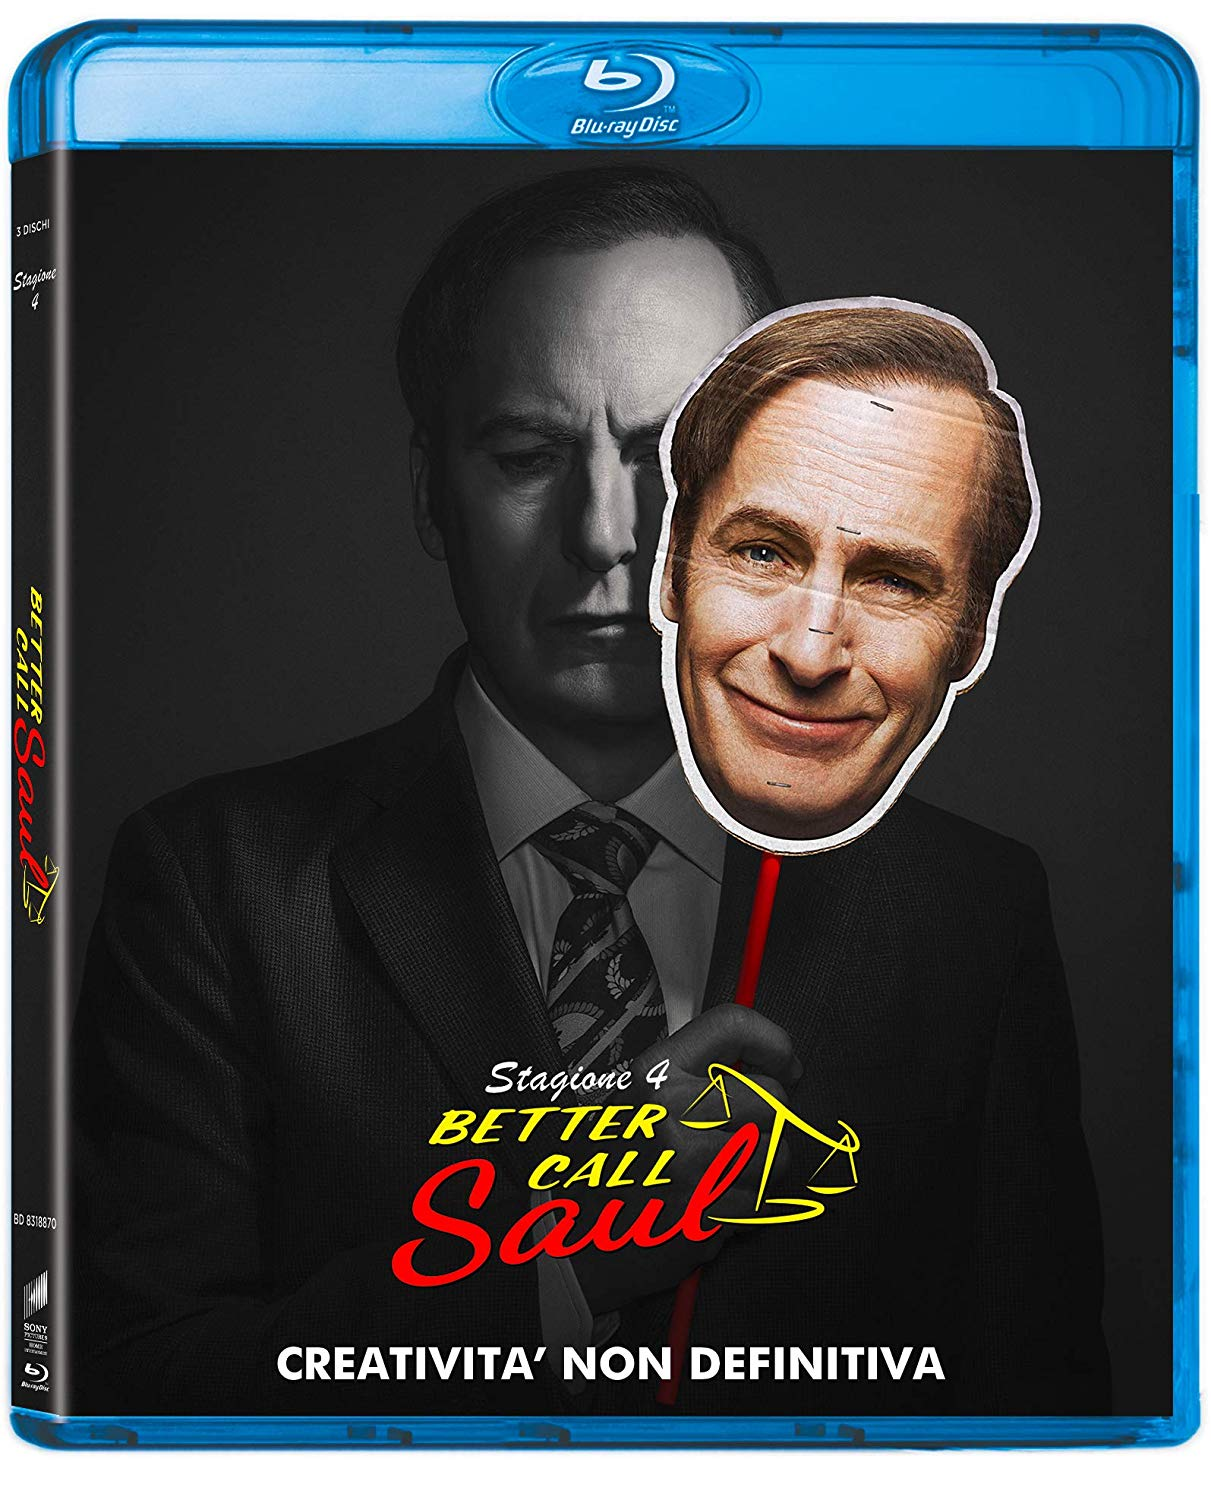 COF.BETTER CALL SAUL - STAGIONE 04 (3 BLU-RAY)